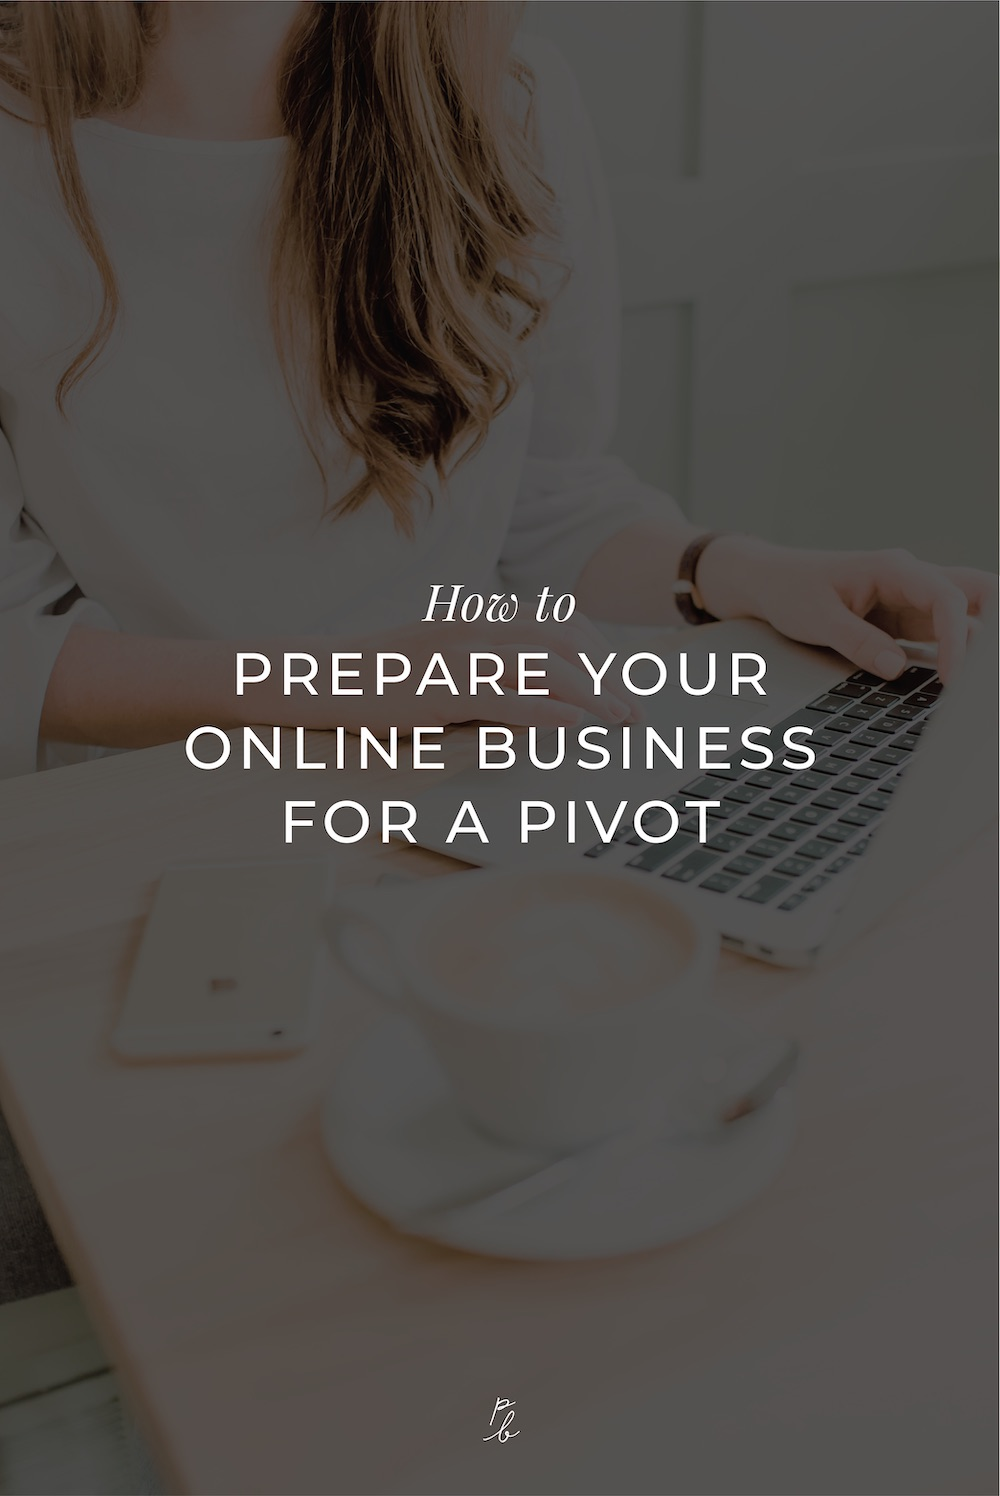 2-How toPREPARE YOUR ONLINE BUSINESS FOR A PIVOT    .jpg